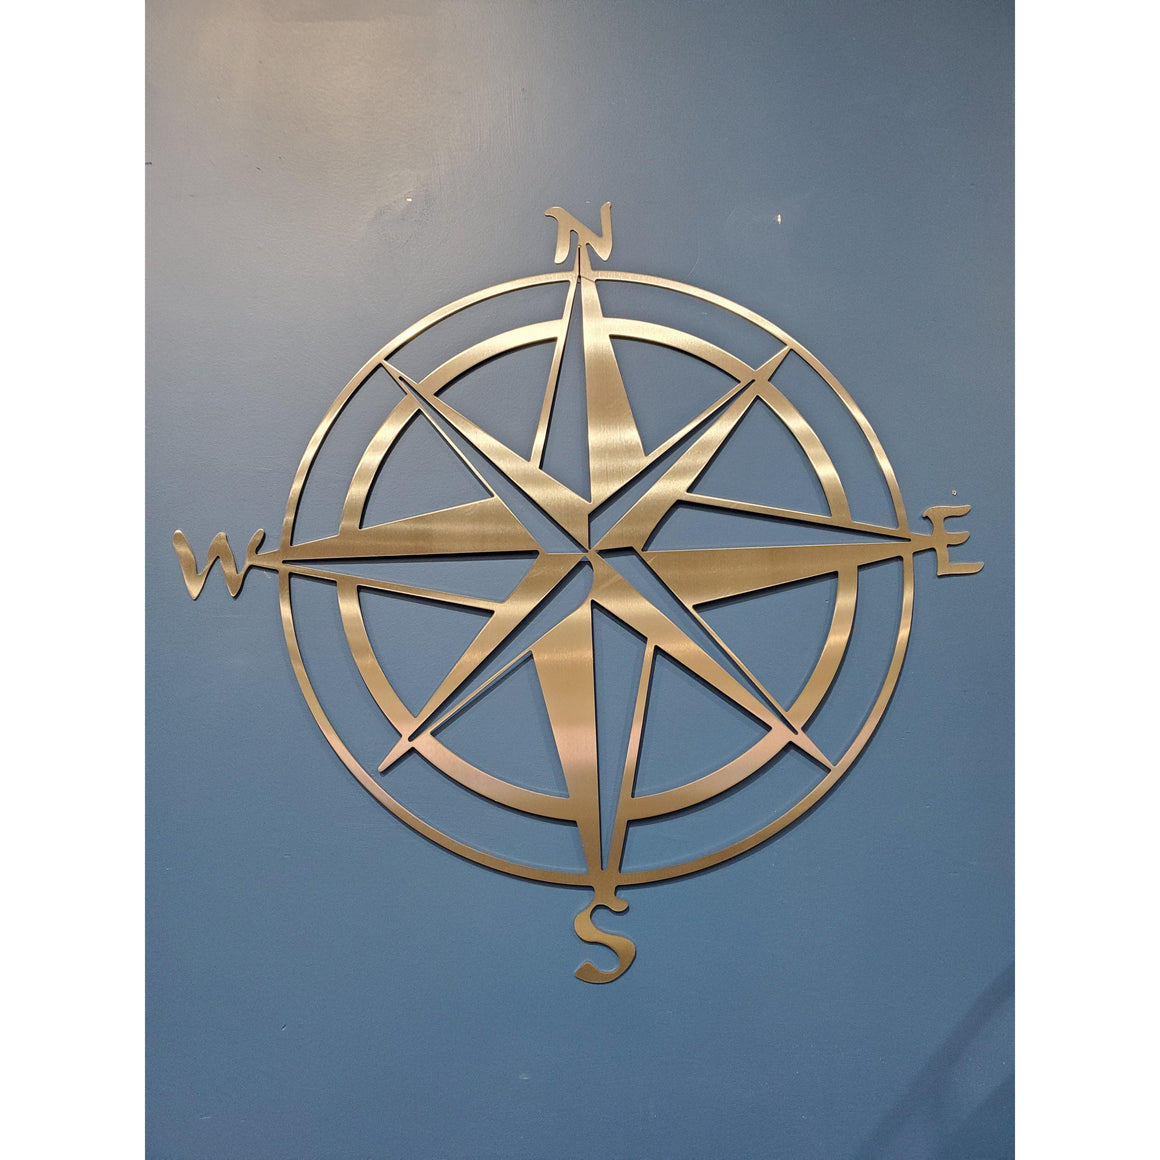 Nautical Stainless Steel Compass Rose Metal Wall Art - Home Decor-Home Decor-Cascade Manufacturing